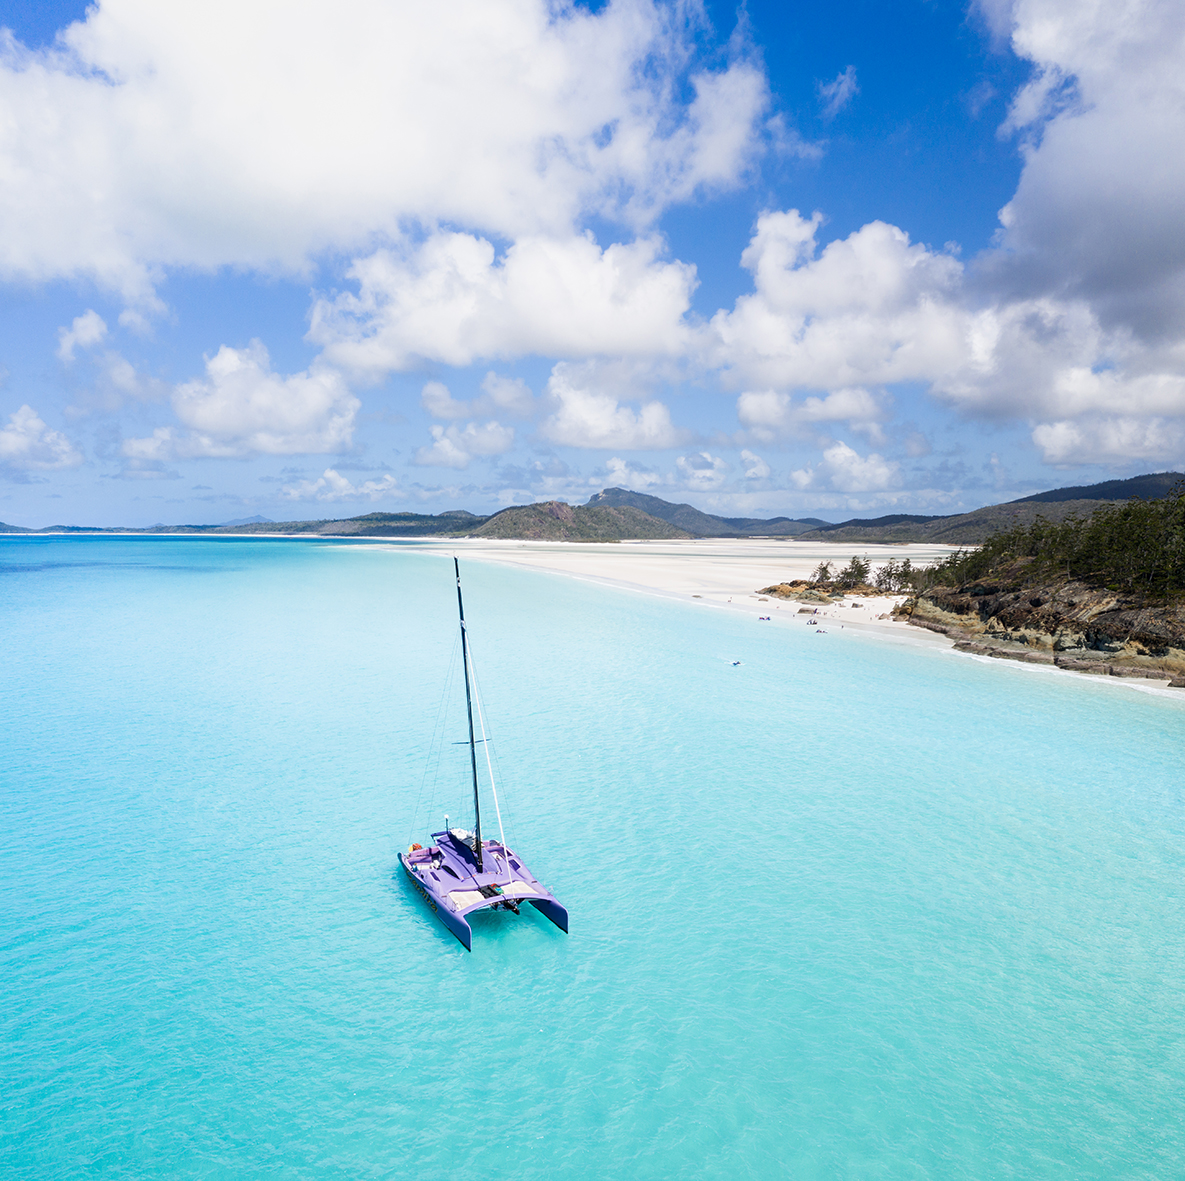 Experience the wonders of the Whitsundays on this full day cruise on board Camira – our big purple catamaran! Sail through the azure blue waters of the Whitsunday Islands, walk to Hill Inlet, snorkel the inner reef and enjoy a delicious BBQ lunch.